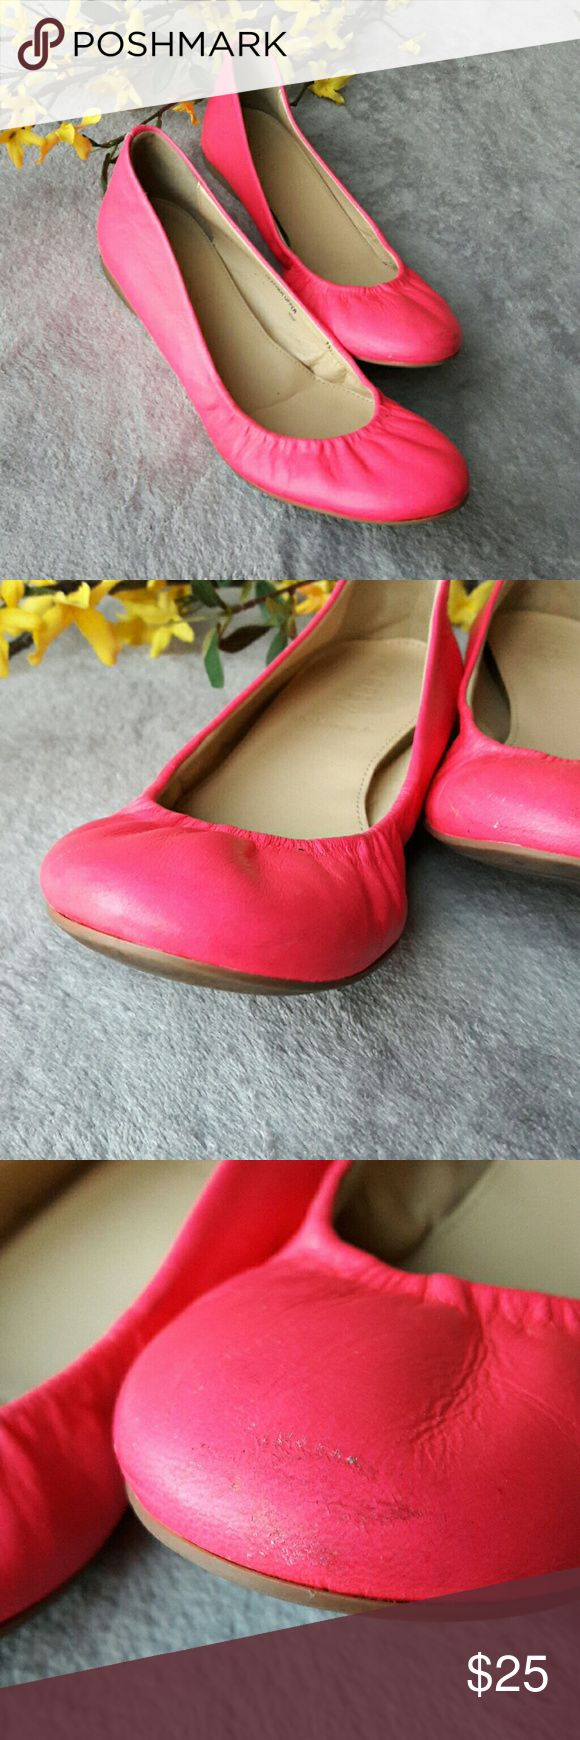 J. Crew Hot Pink Ballet Flats Shoes Cute hot pink shoes from J. Crew. A size 6. Made in Italy with a leather upper. Some scuffs and marks, shown in pictures. J. Crew Shoes Flats & Loafers